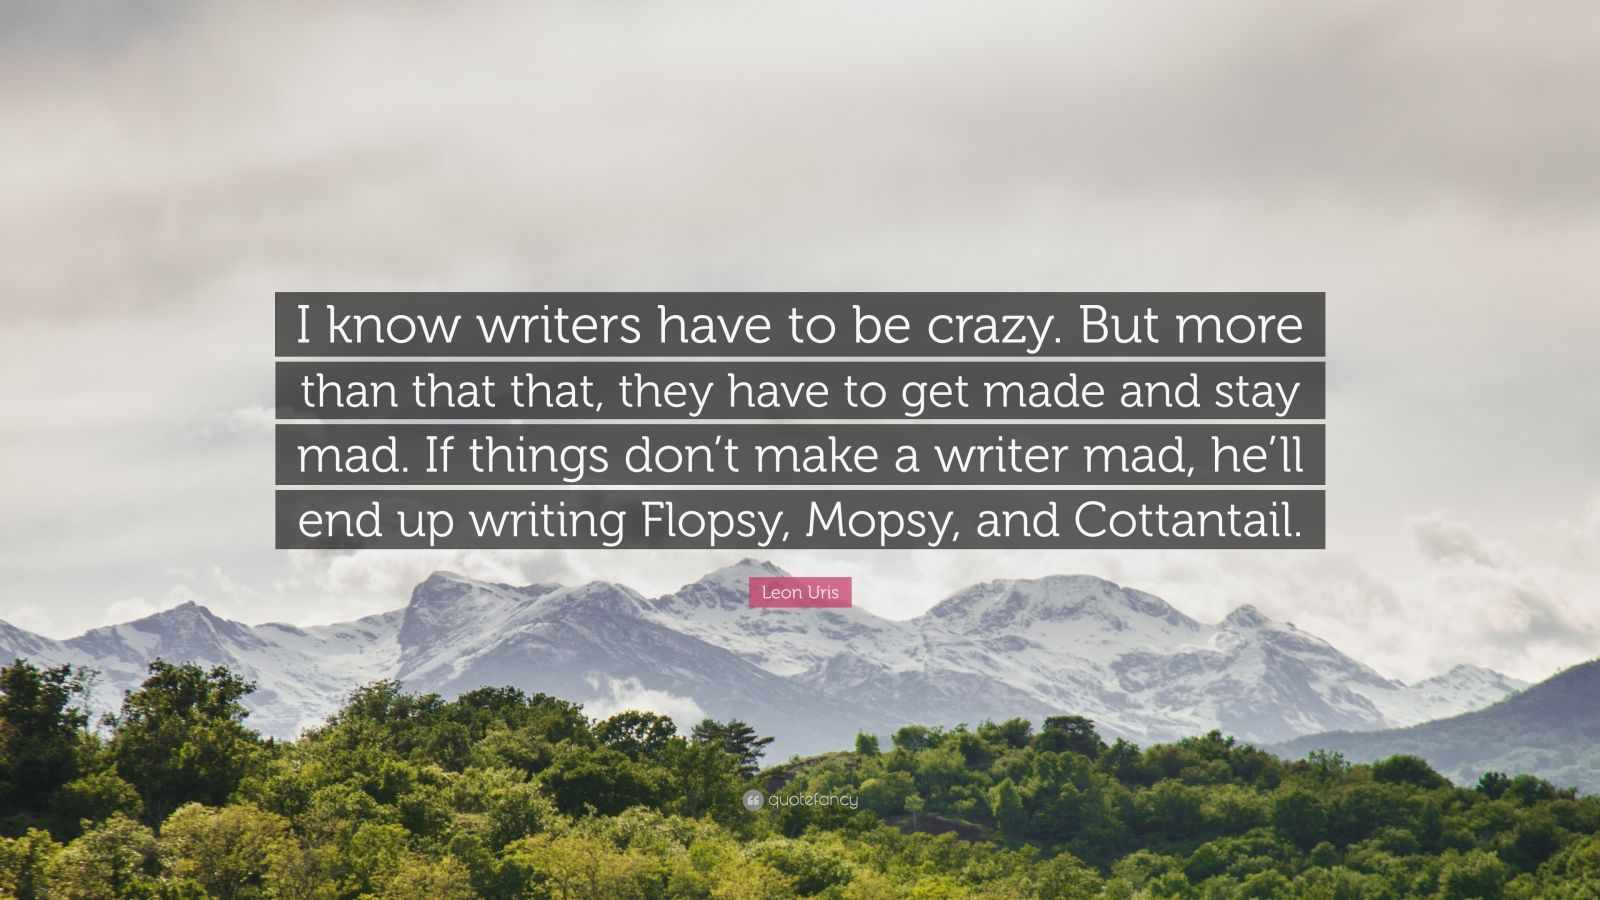 """Leon Uris Quote: """"I know writers have to be crazy. But more than that that, they have to get made and stay mad. If things don't make a writer mad, he'll end up writing Flopsy, Mopsy, and Cottantail."""""""